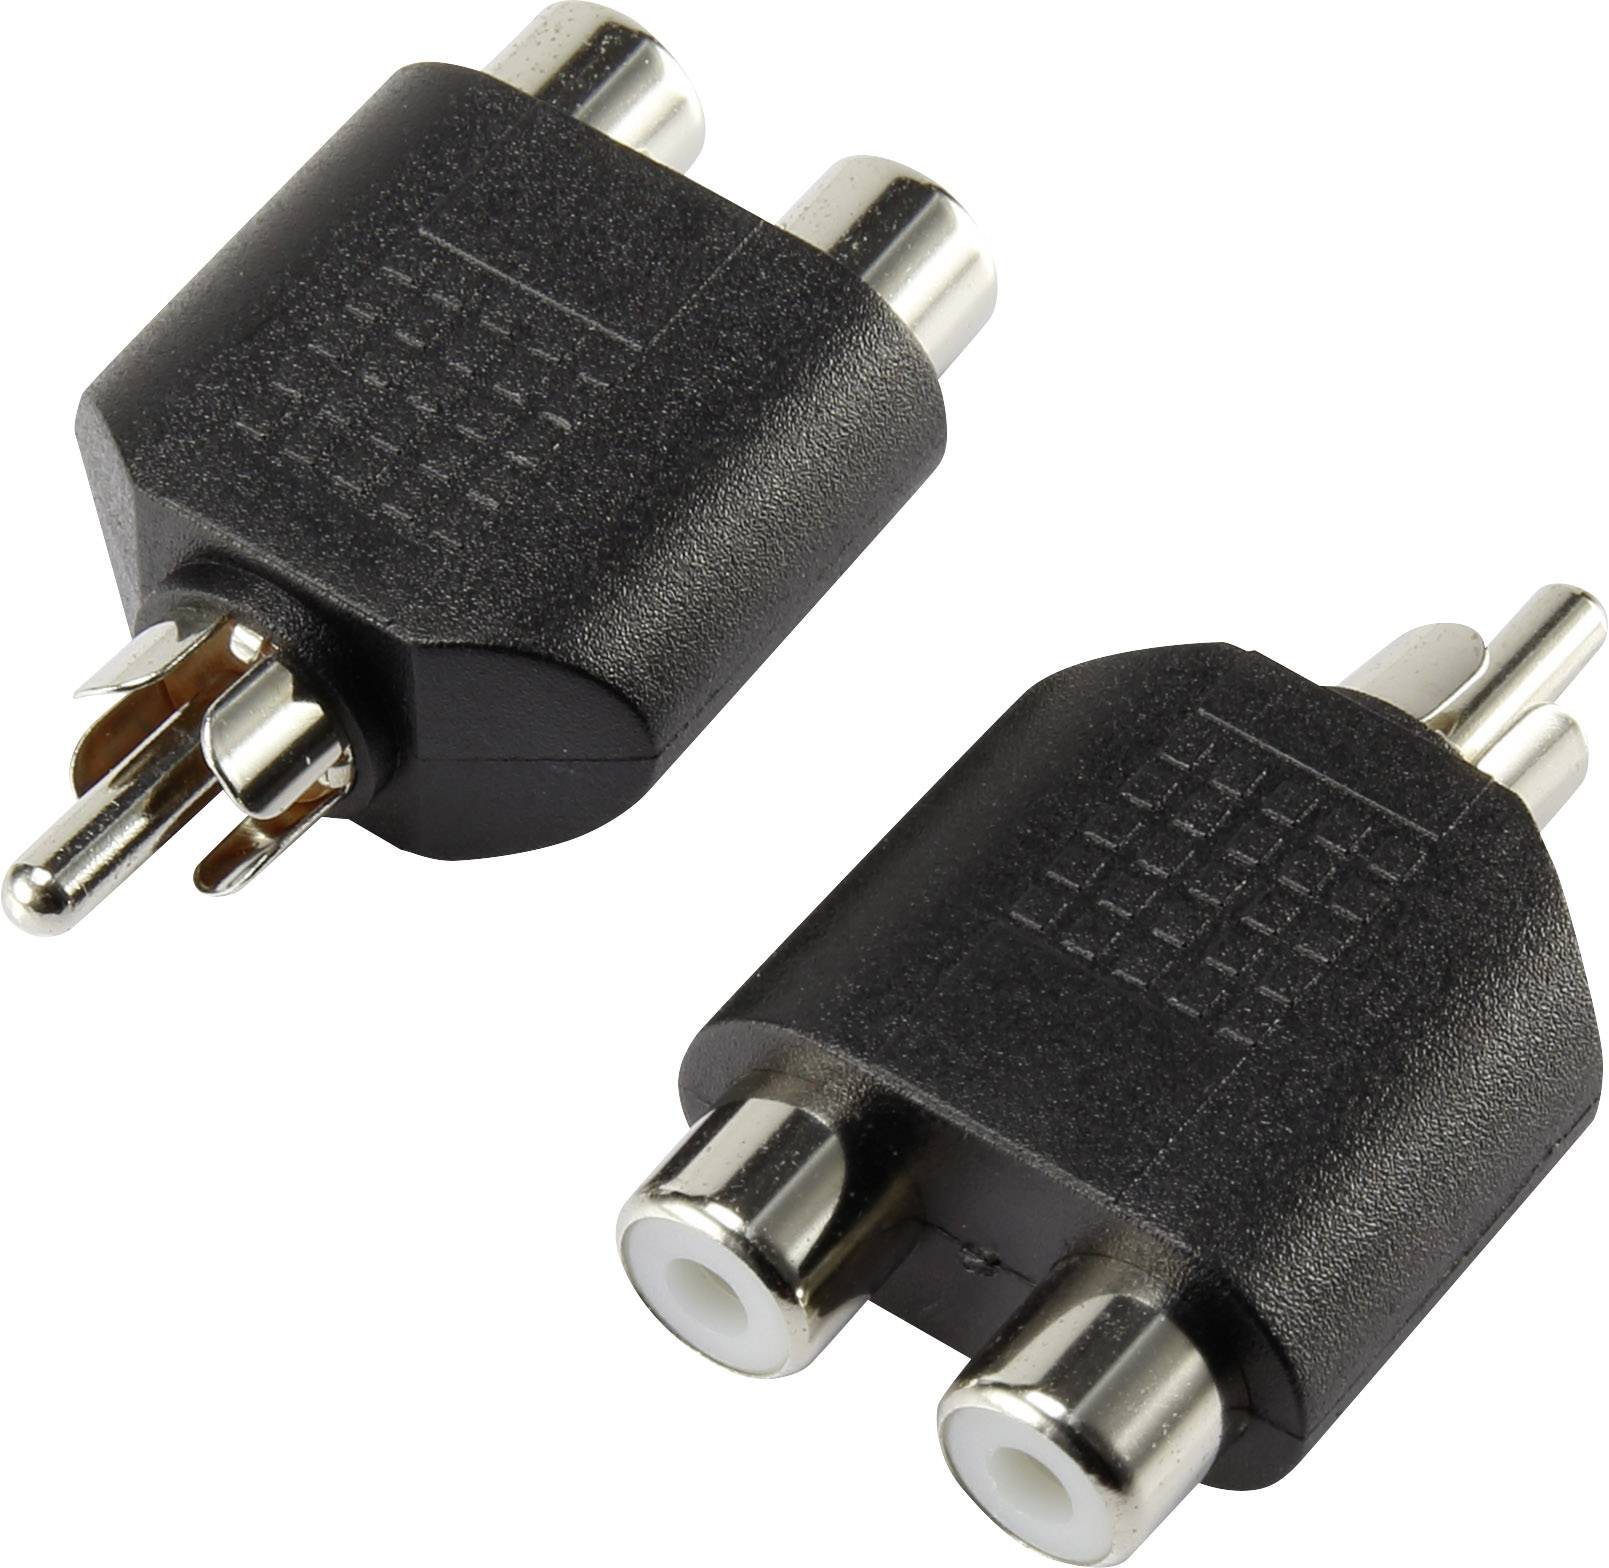 Cinch audio Y adaptér čierna SpeaKa Professional SP-5564192